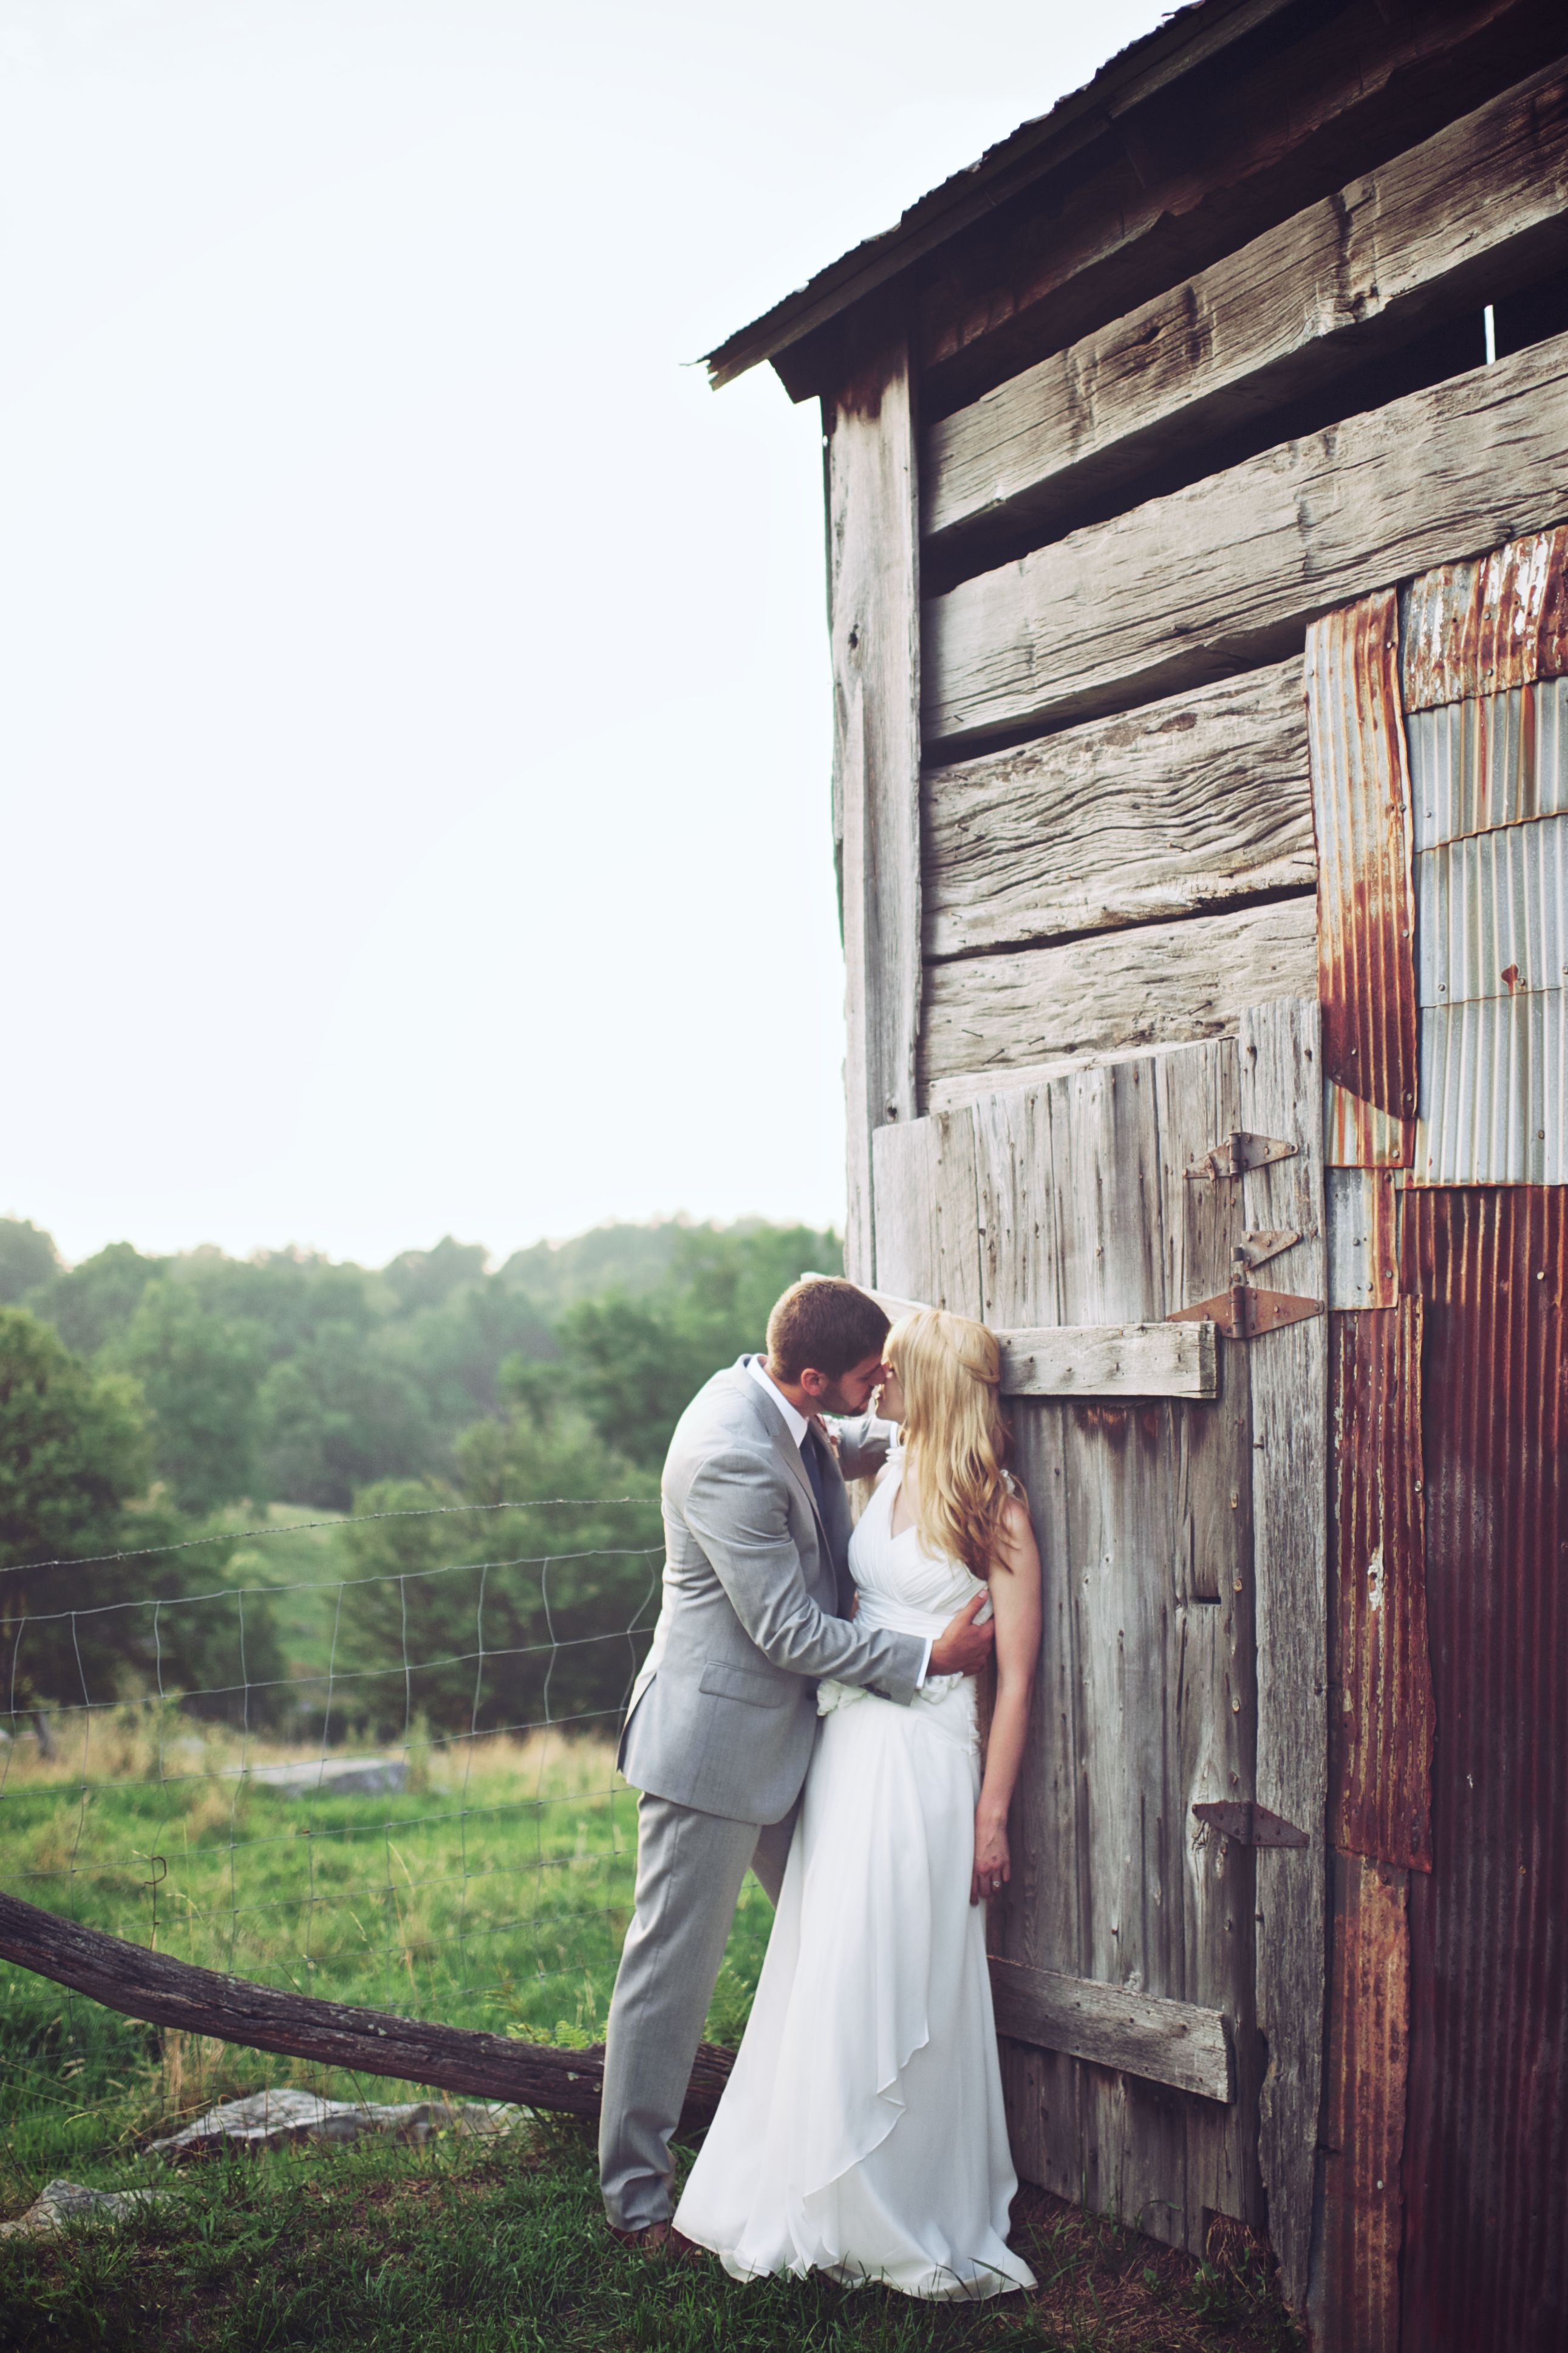 Timeless Beautiful Forever Country Wedding Pictures Wedding Photography Bride Country Wedding Photos